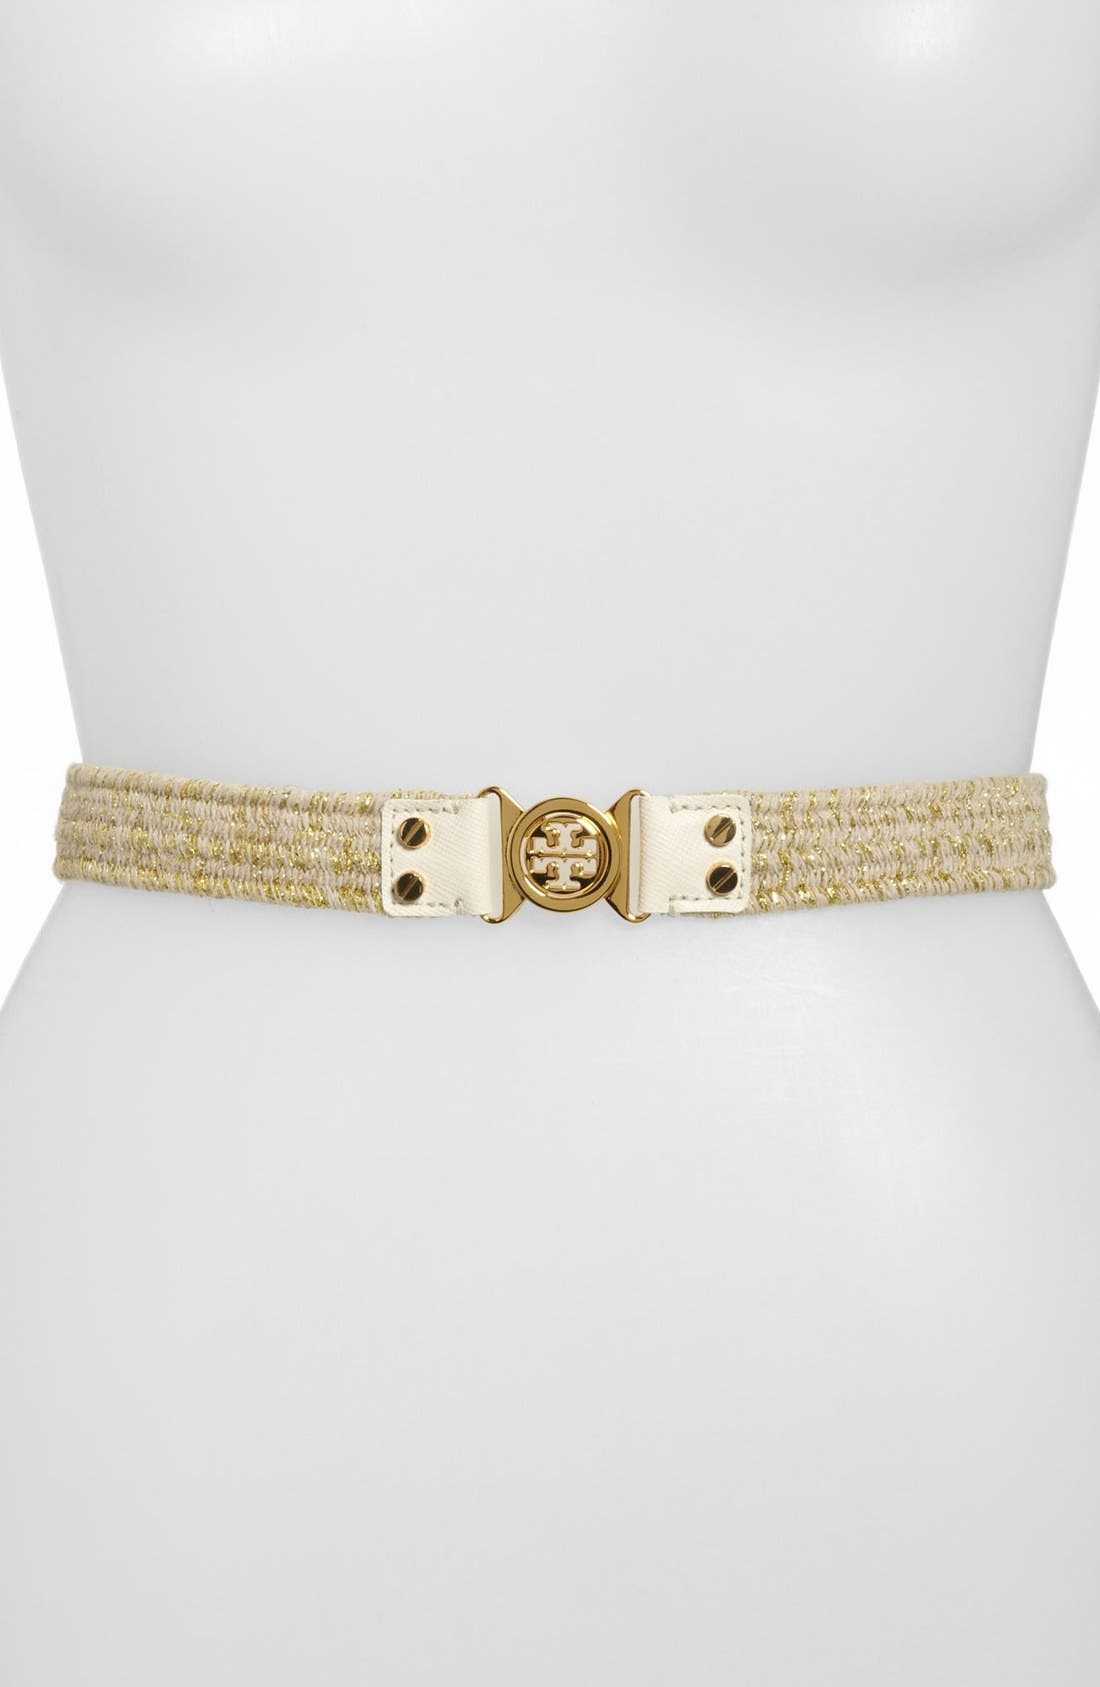 Alternate Image 1 Selected - Tory Burch 'Interlocking Logo - Mini' Stretch Belt